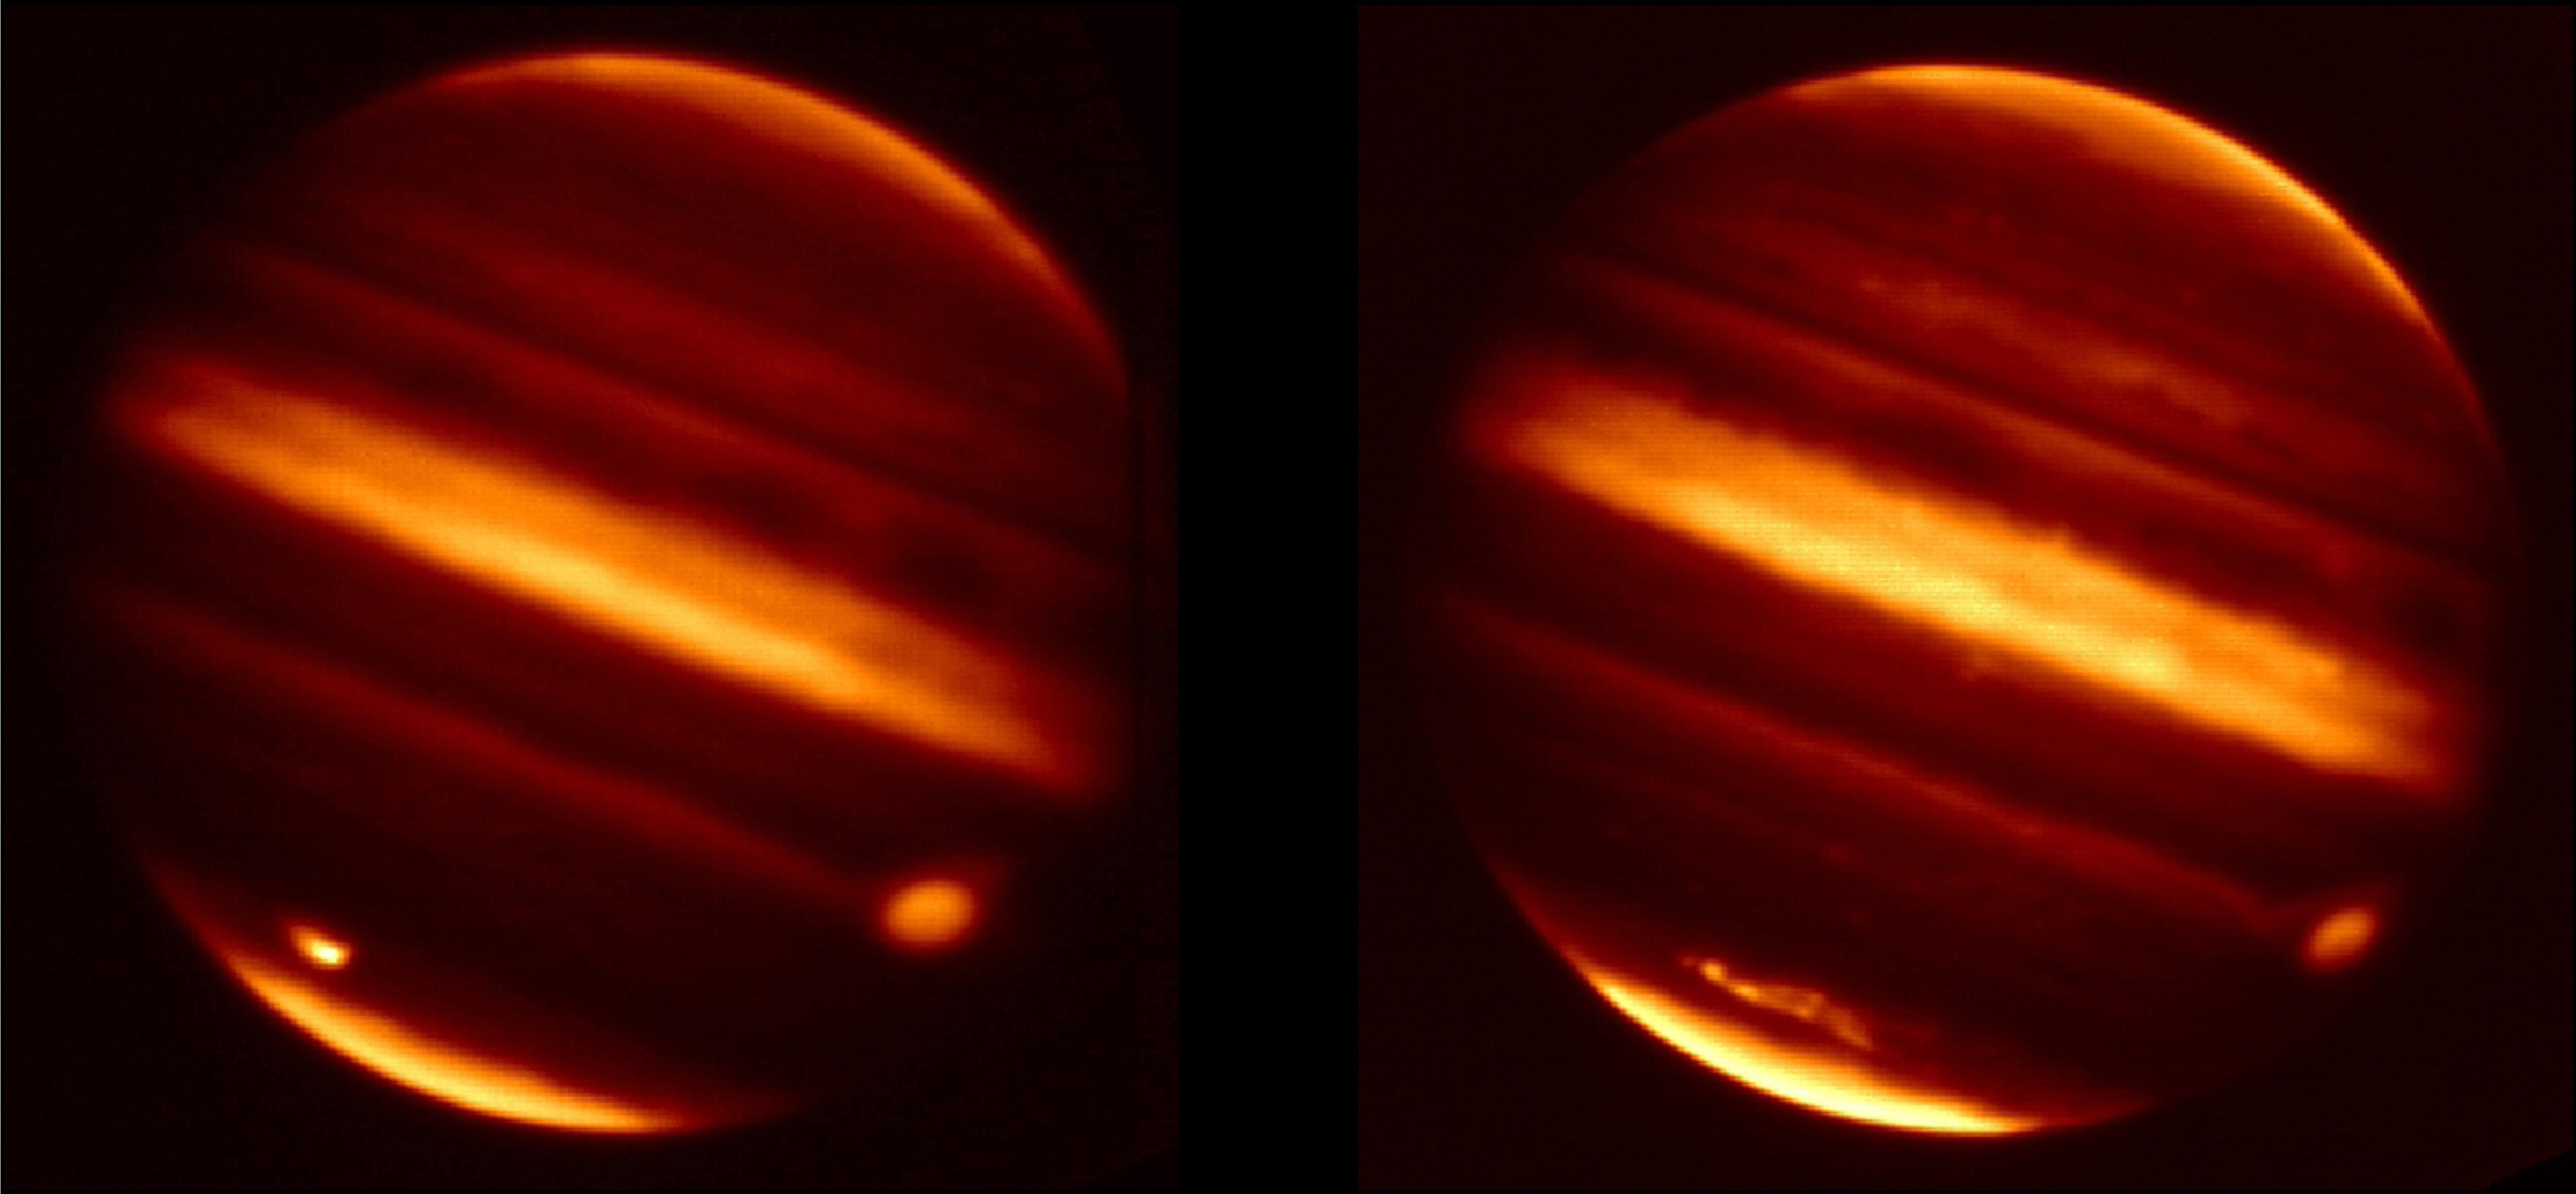 These infrared images obtained from NASA's Infrared Telescope Facility in Mauna Kea, Hawaii, show before and aftereffects from particle debris in Jupiter's atmosphere after an object hurtled into the atmosphere on July 19, 2009.